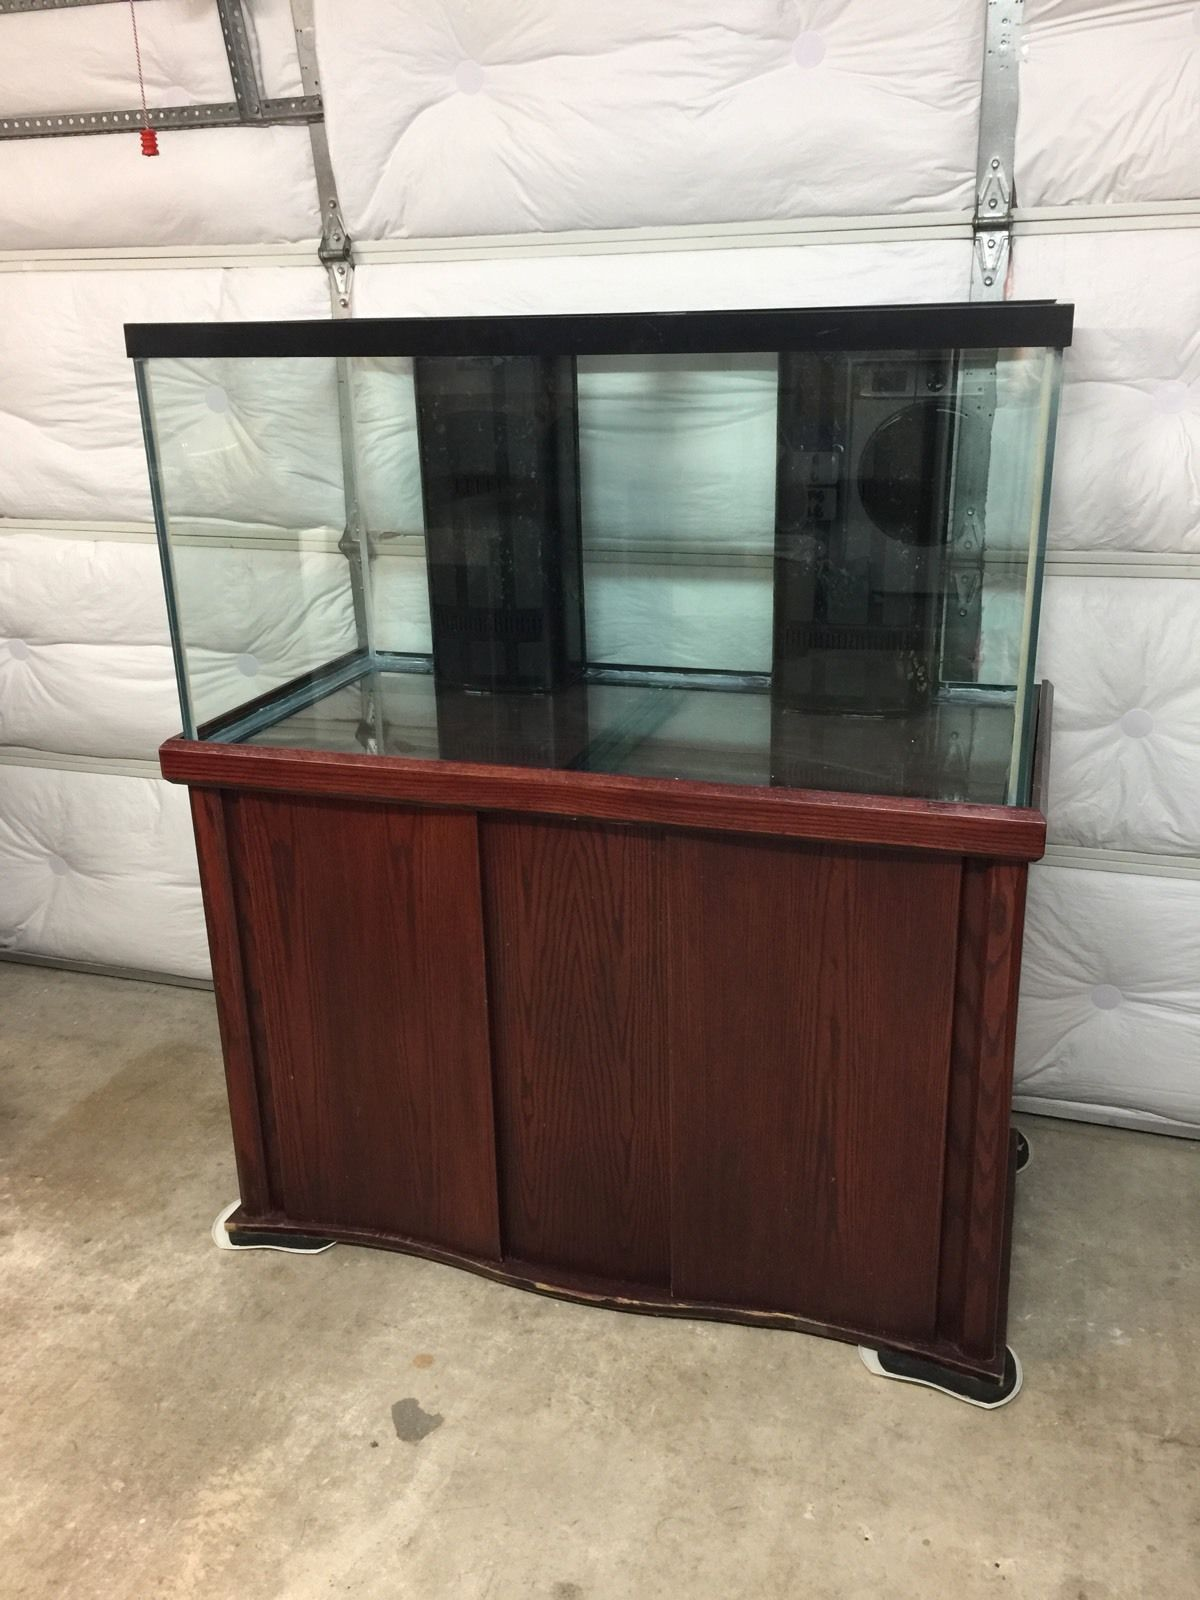 120 Gallon All Glass Fish Tank Aquarium With Stand Glass Fish Tanks Glass Fish Tanked Aquariums